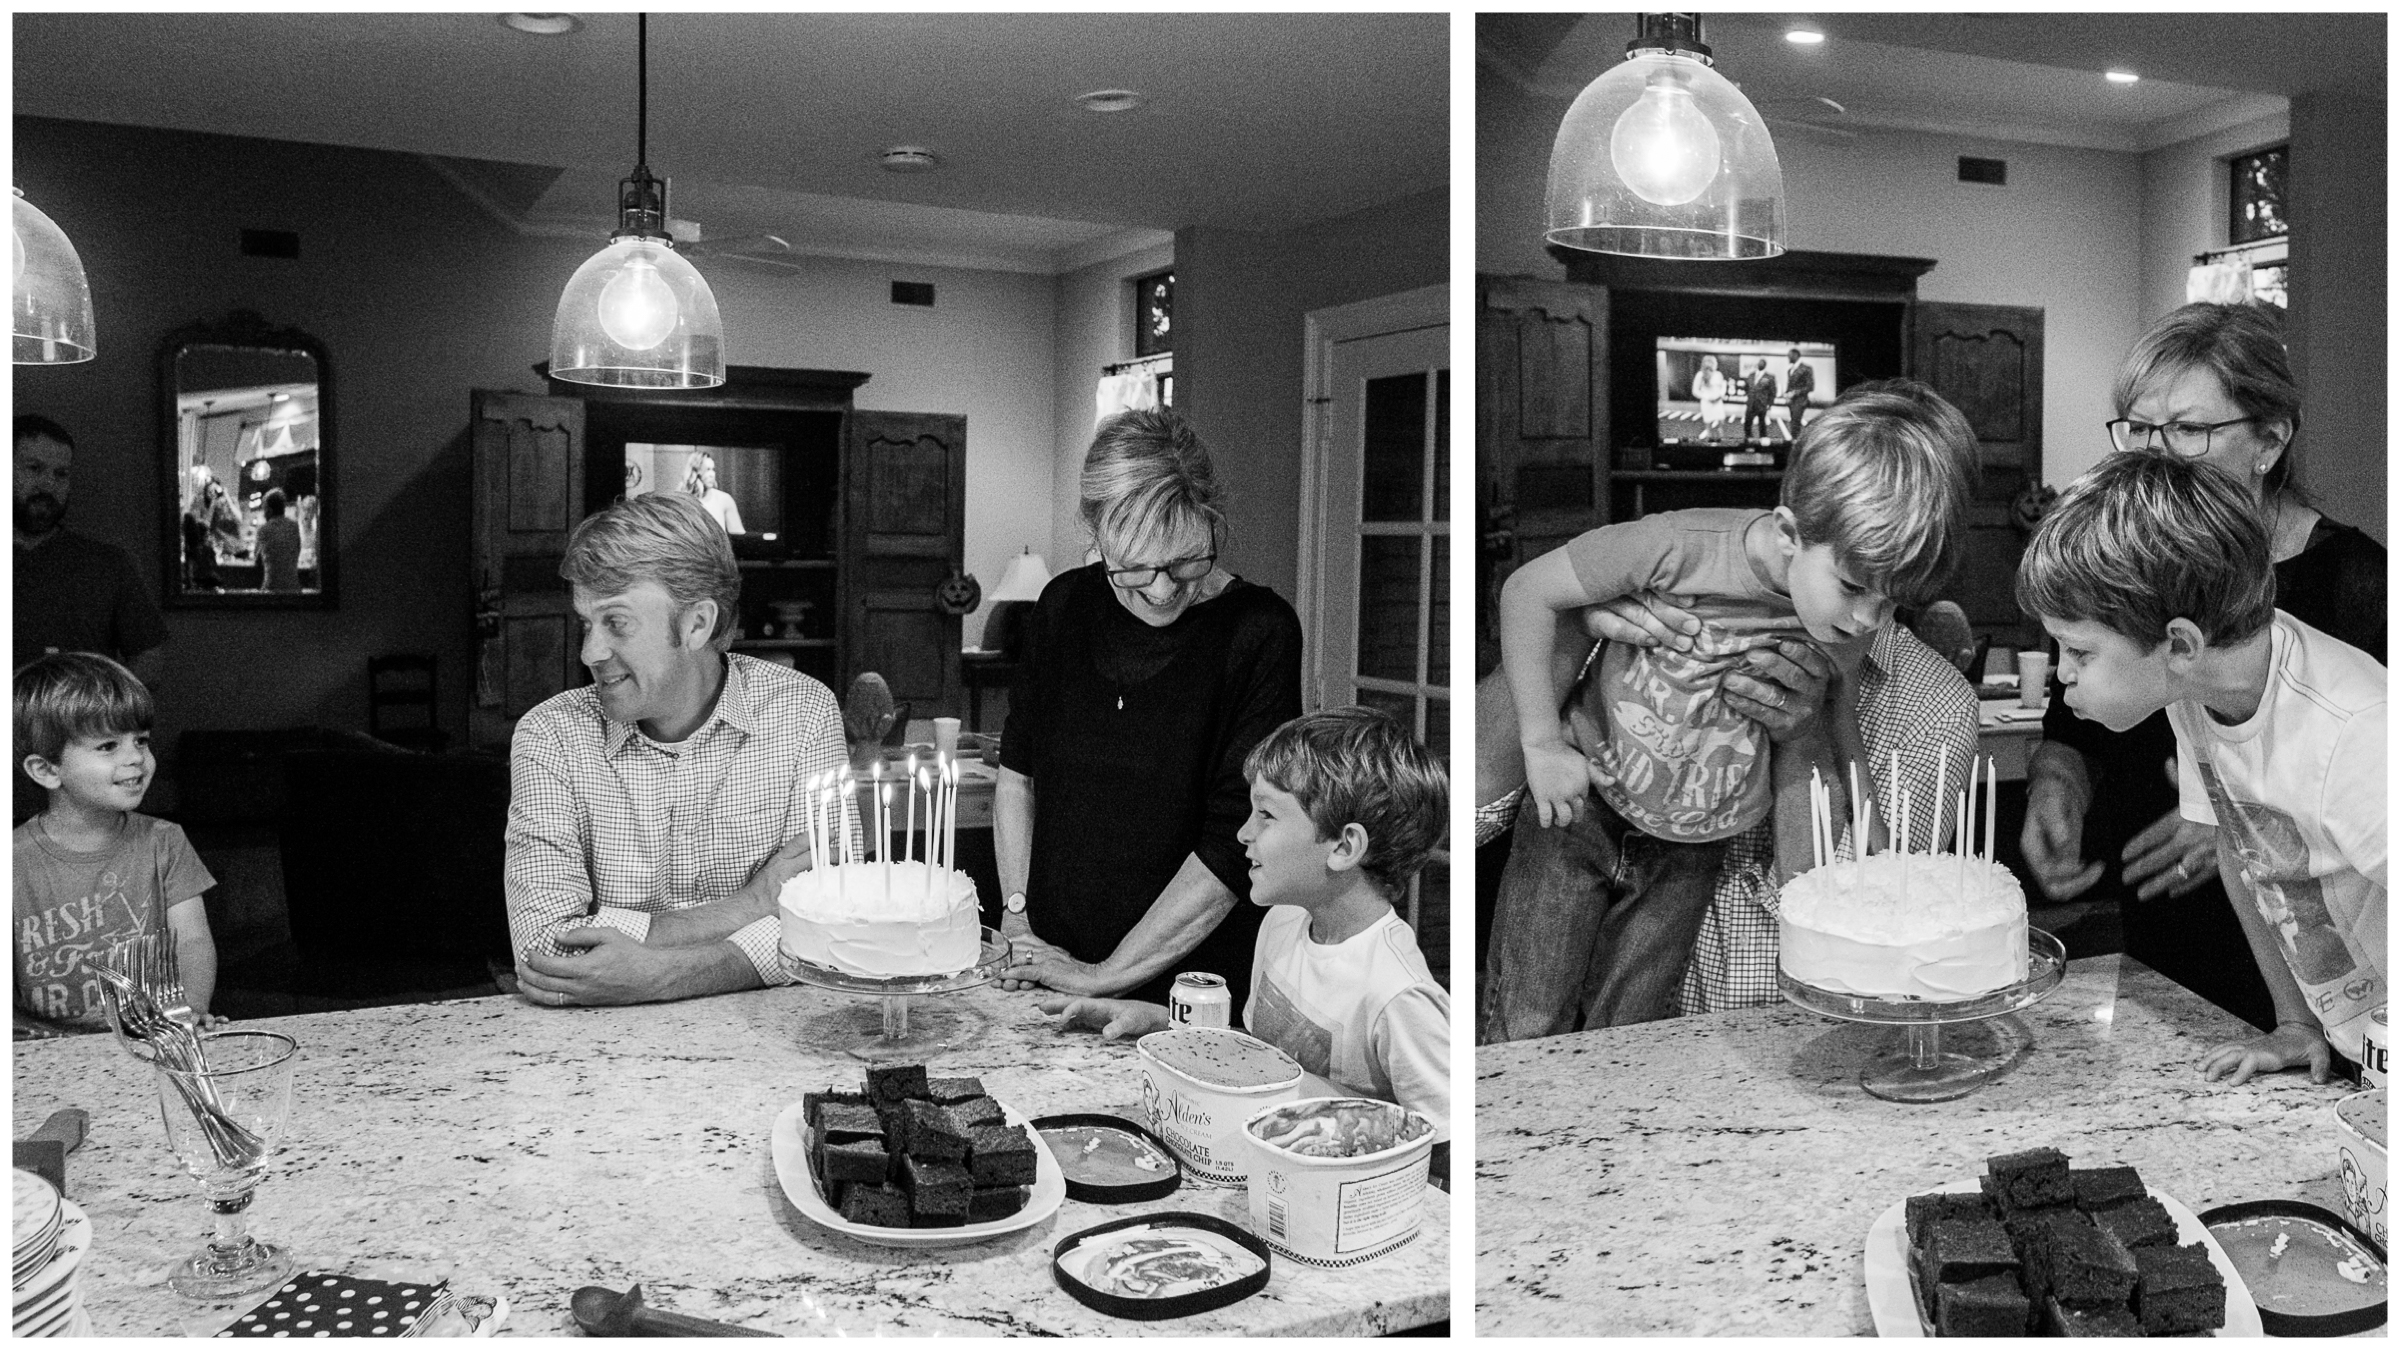 A few nights later, we celebrated both Wes' and Nana's special days.